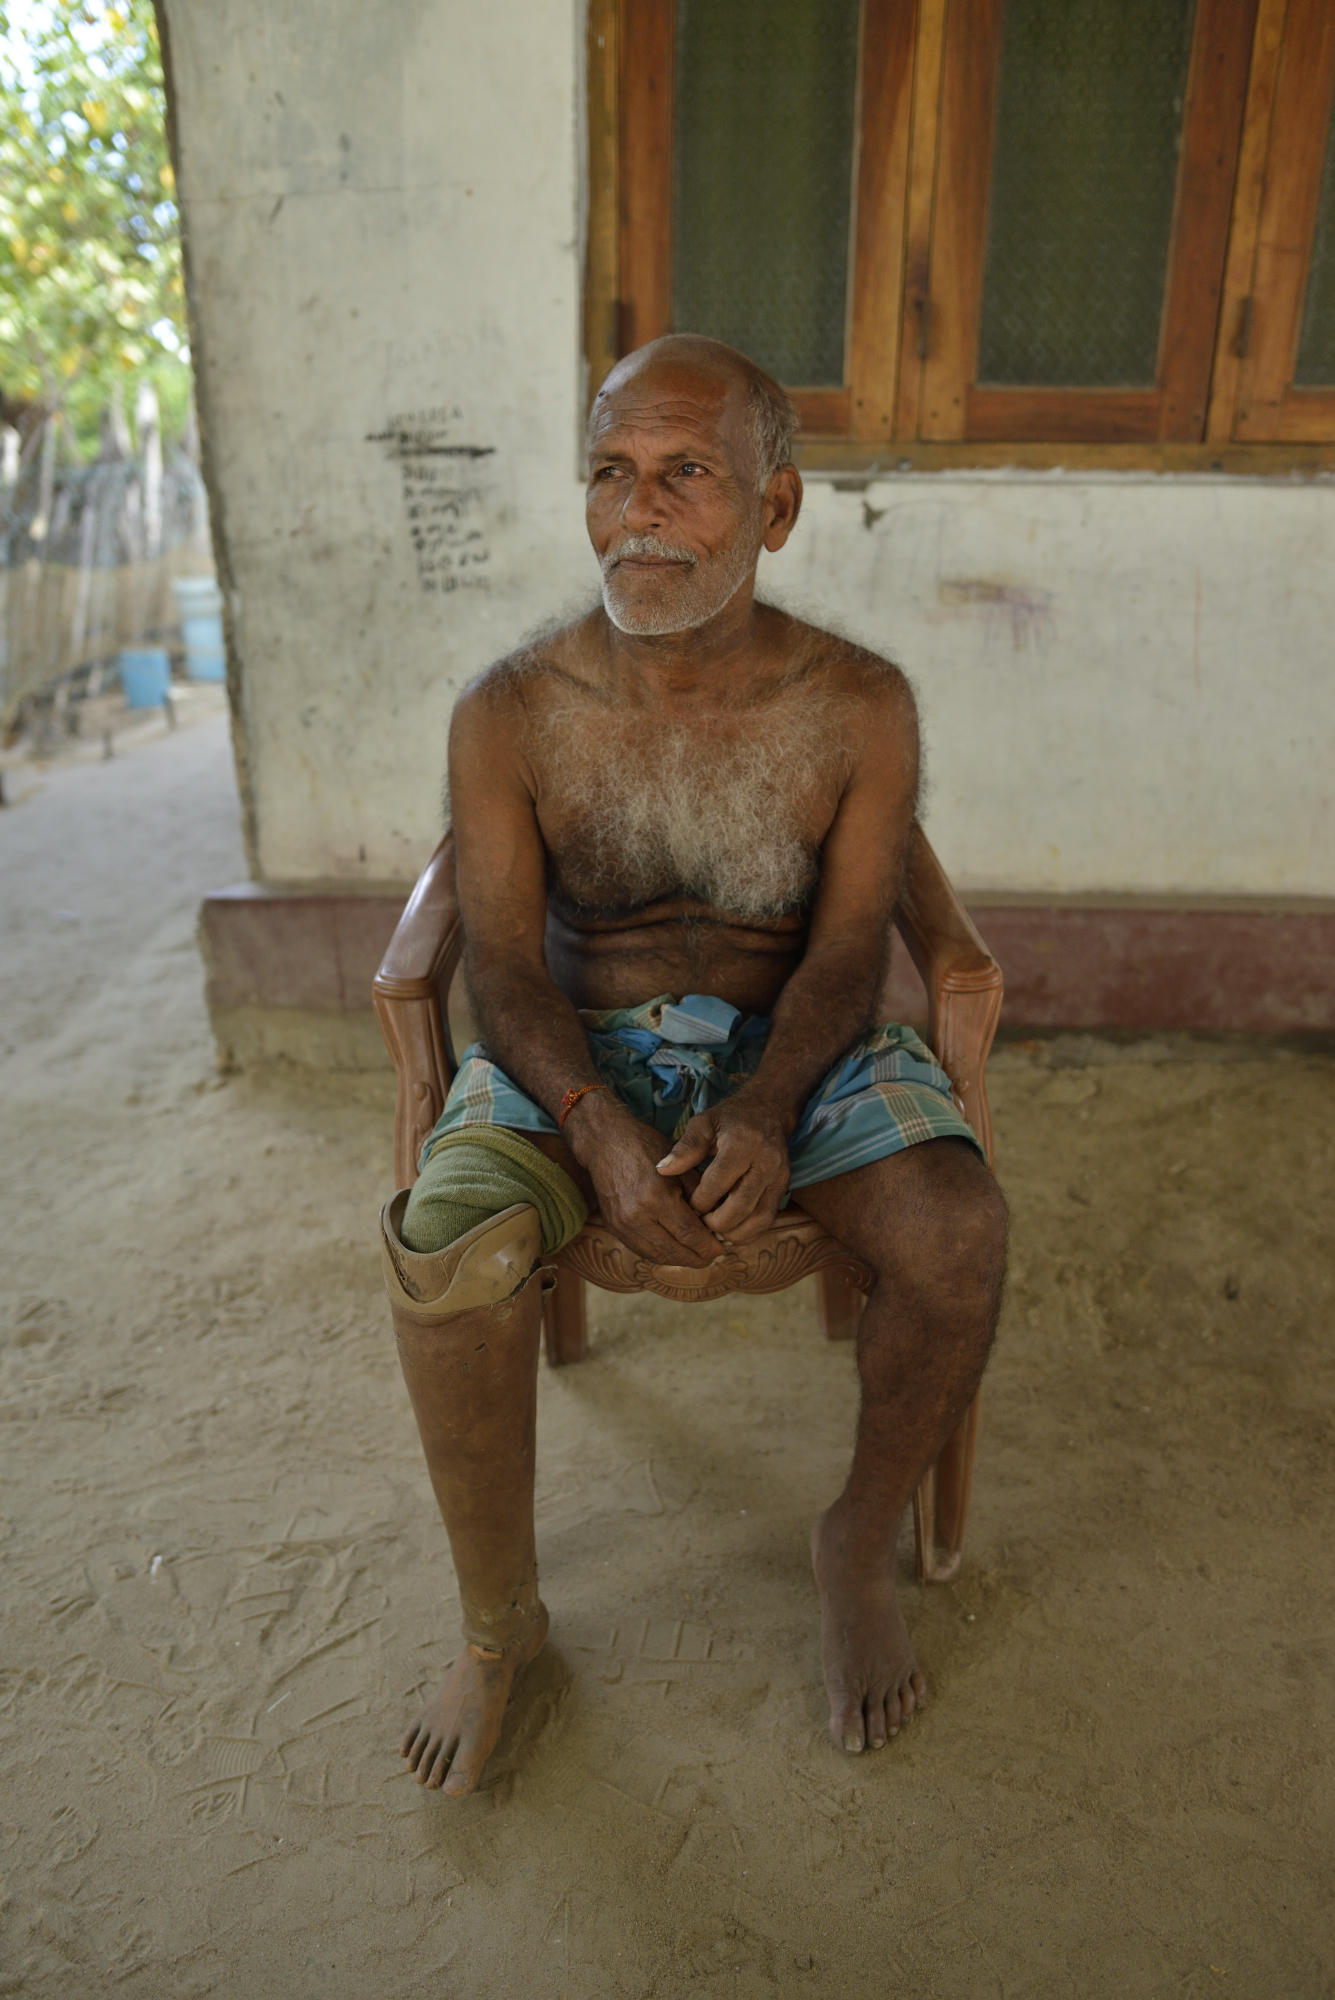 Kanathathi Kidnar, 70, a former tapper, lost his leg to a land mine near his village in 2001.